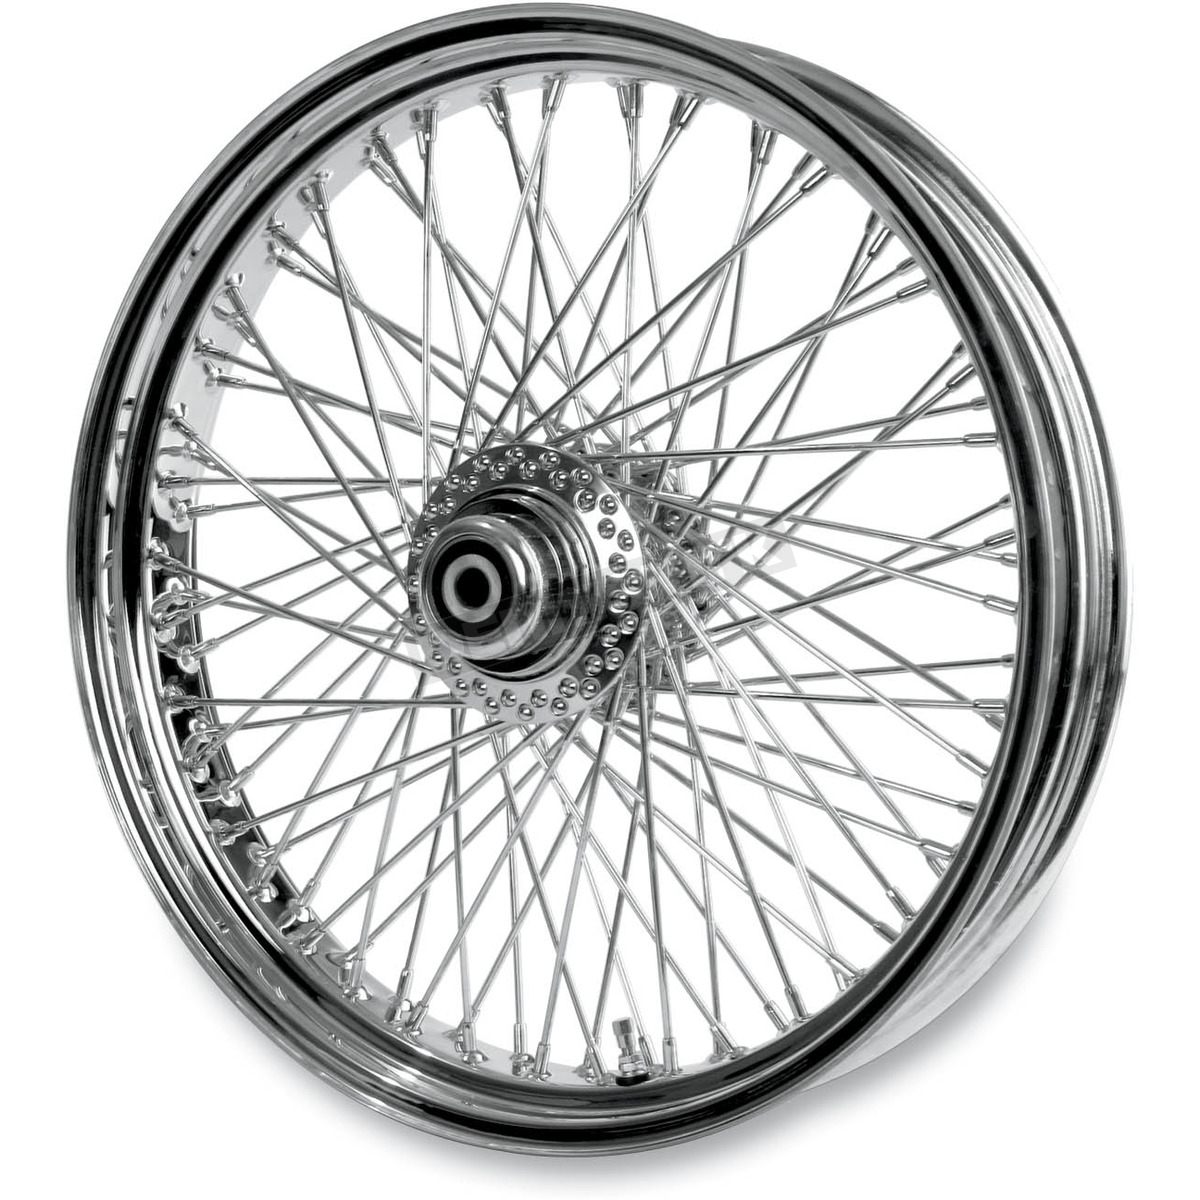 Paughco 21 In X 3 5 In Chrome 80 Spoke Front Wheel Assembly W Round Spokes